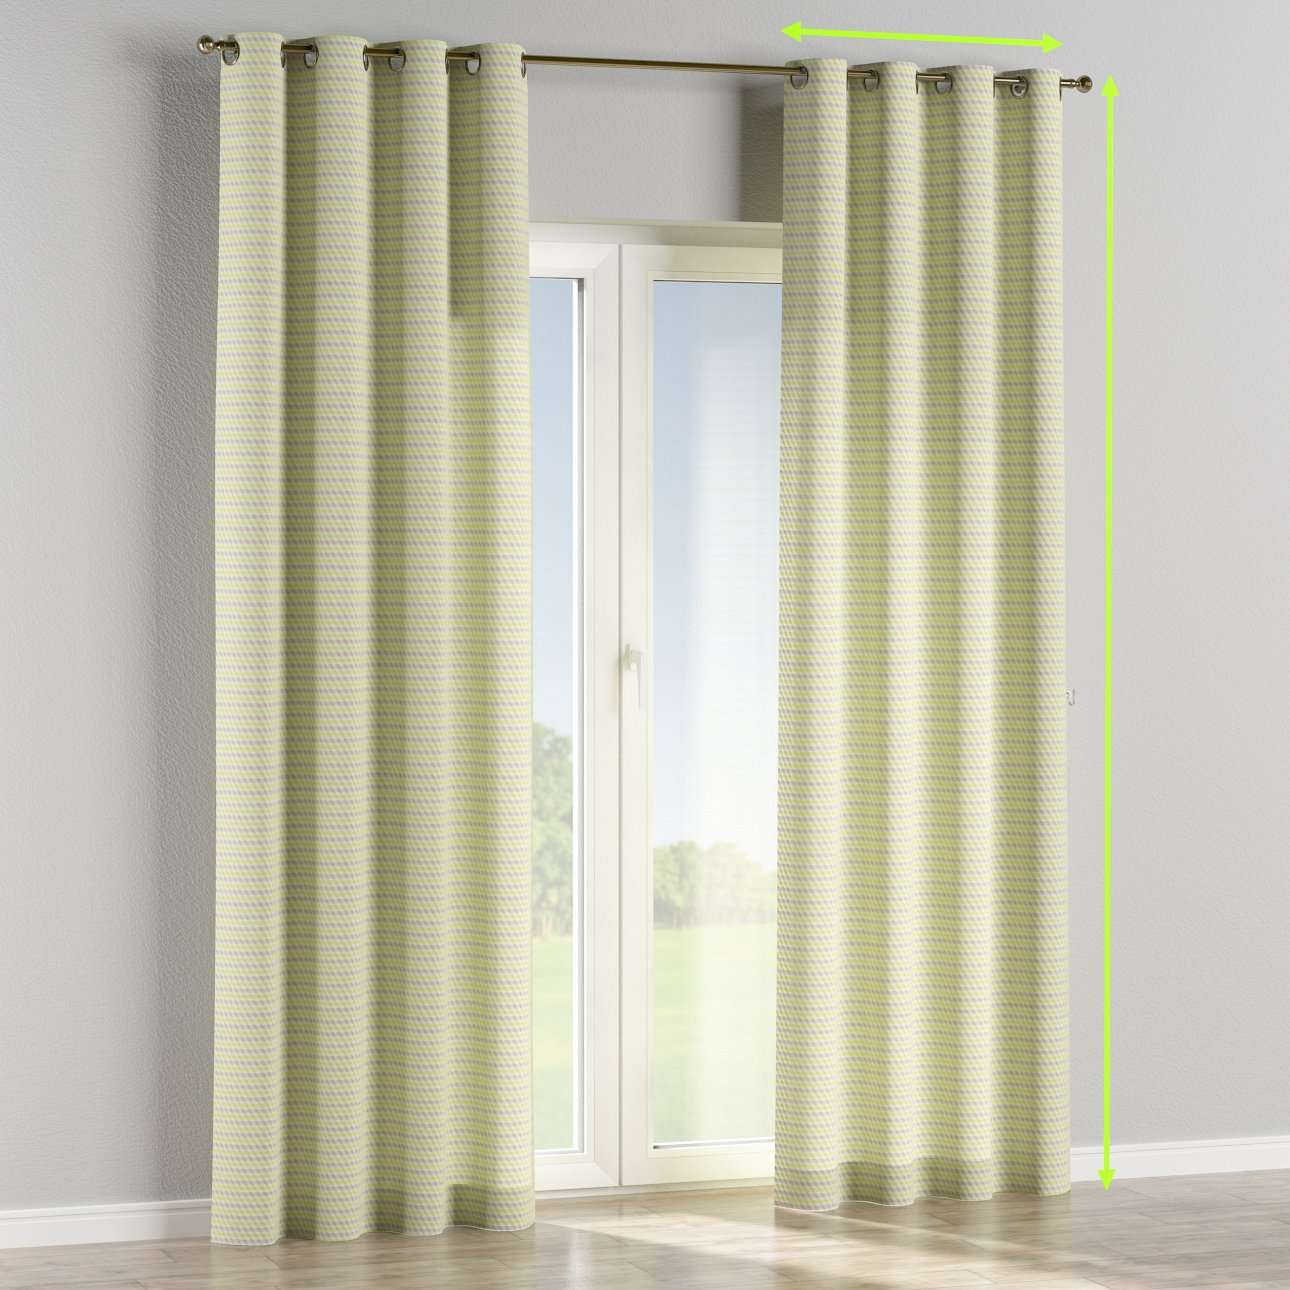 Eyelet curtains in collection Rustica, fabric: 140-36